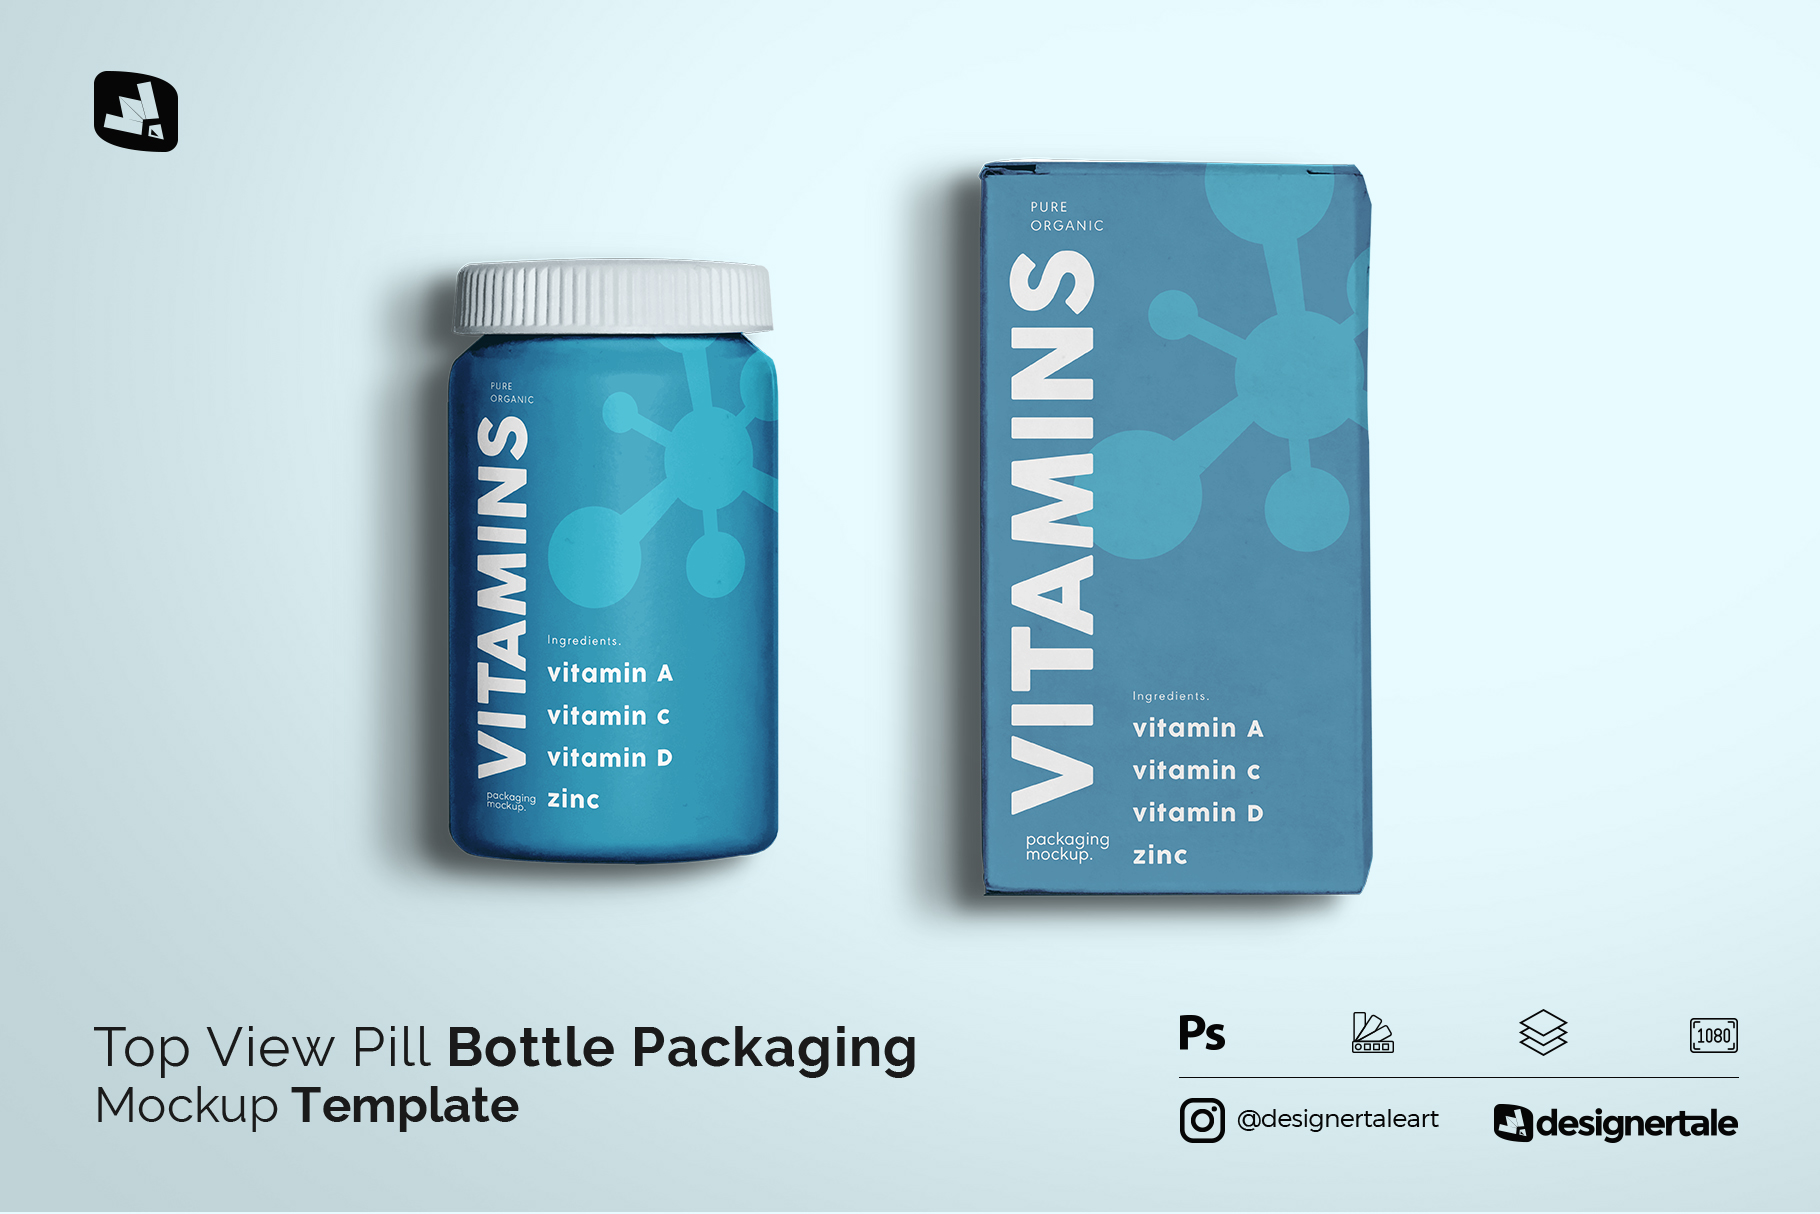 Top View Pill Bottle Packaging Mockup